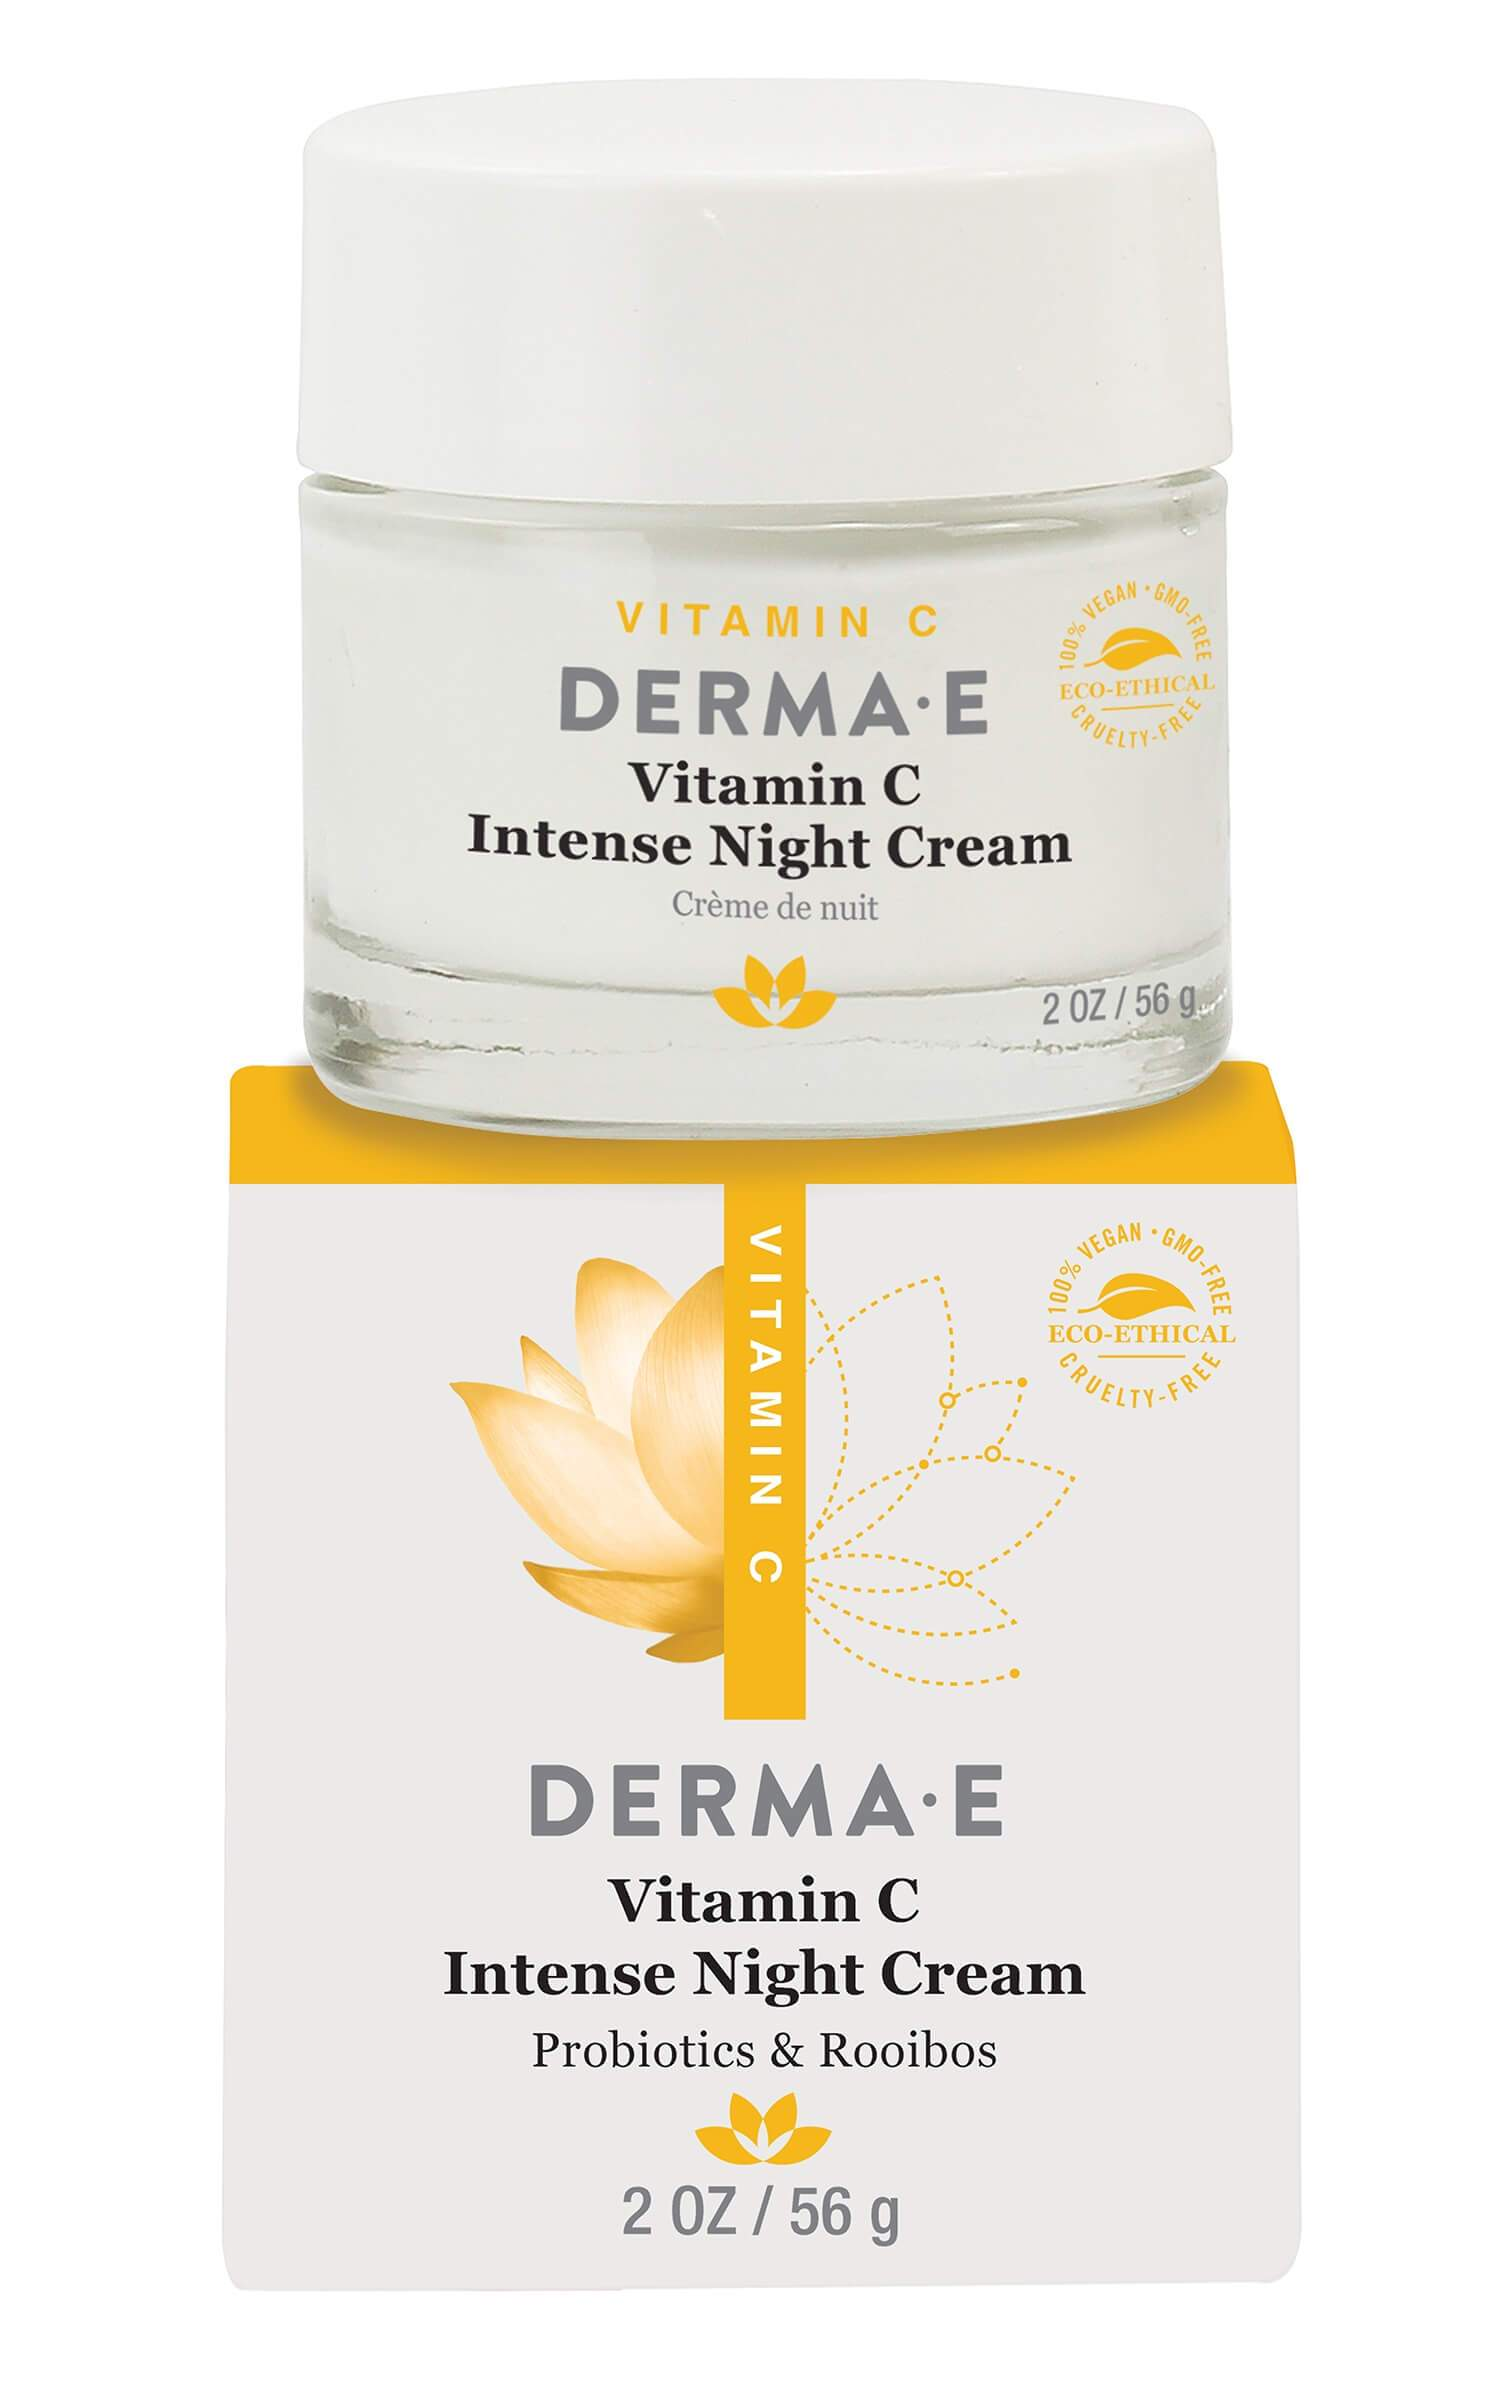 Personal Care - Derma E - Vitamin C Intense Night Creme - 56g